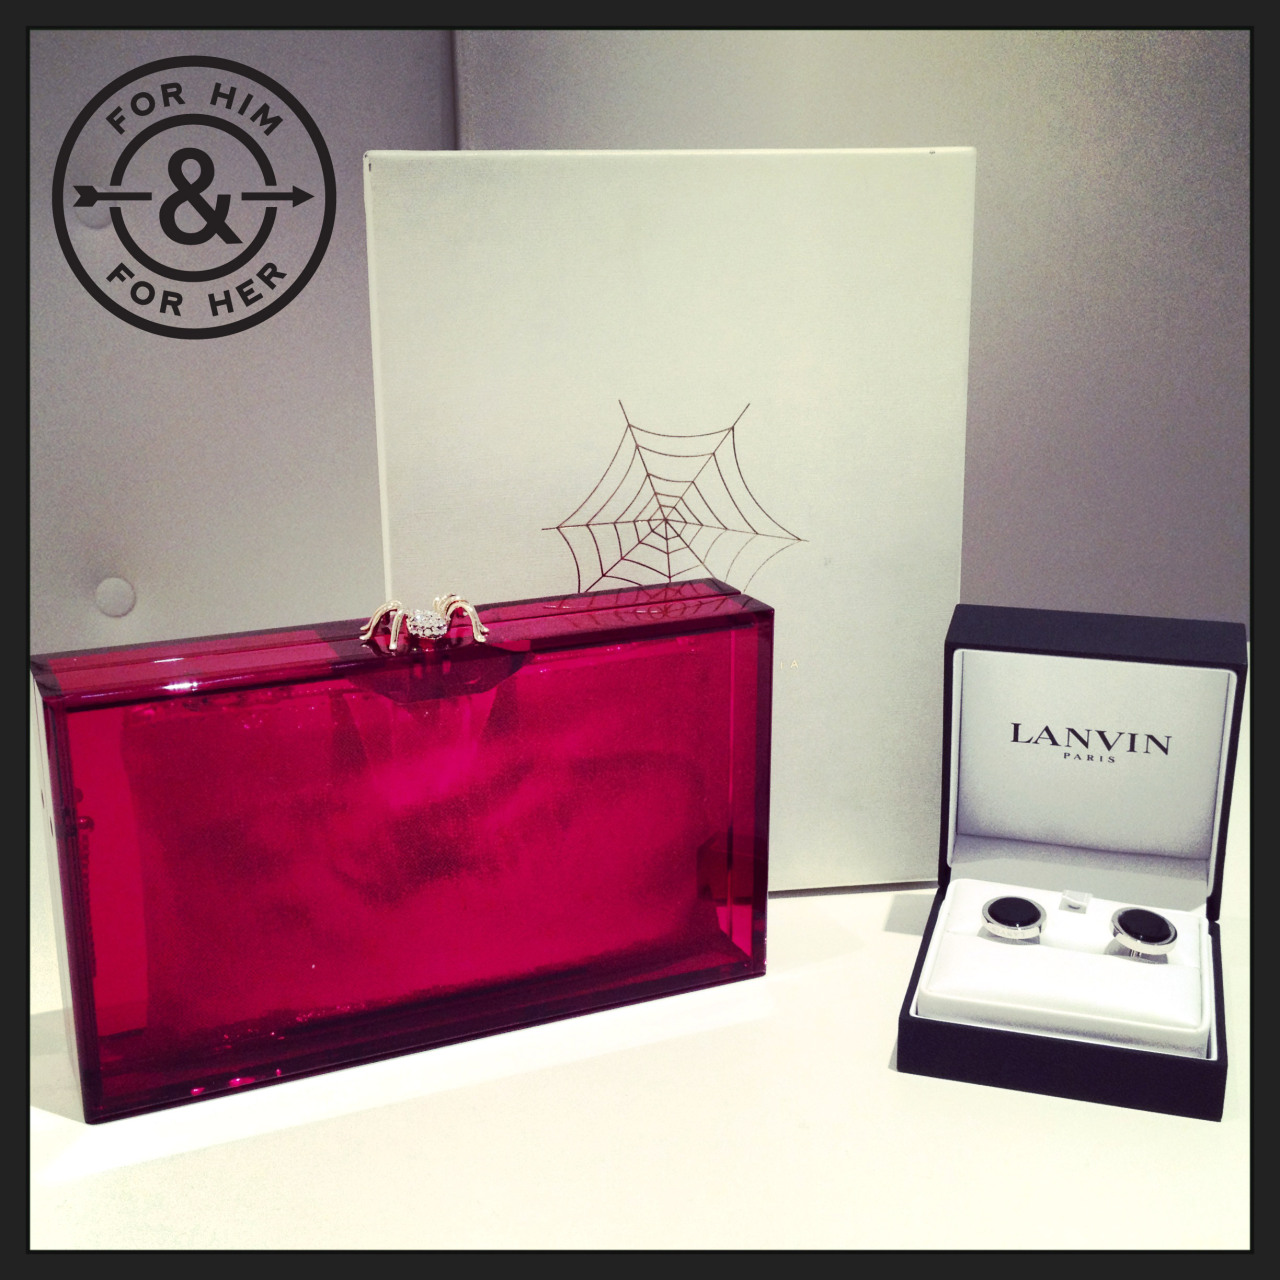 Valentine's Day | For Him & For HerFor Him - Lanvin Silver-Plated Onyx CufflinksShop at MR PORTER > http://mr-p.co/mtYBn3For Her - Charlotte Olympia Perspex ClutchShop at NET-A-PORTER > http://bit.ly/14HOIBLThere's still time - make use of our special delivery services to ensure you don't miss out this Valentine's Day